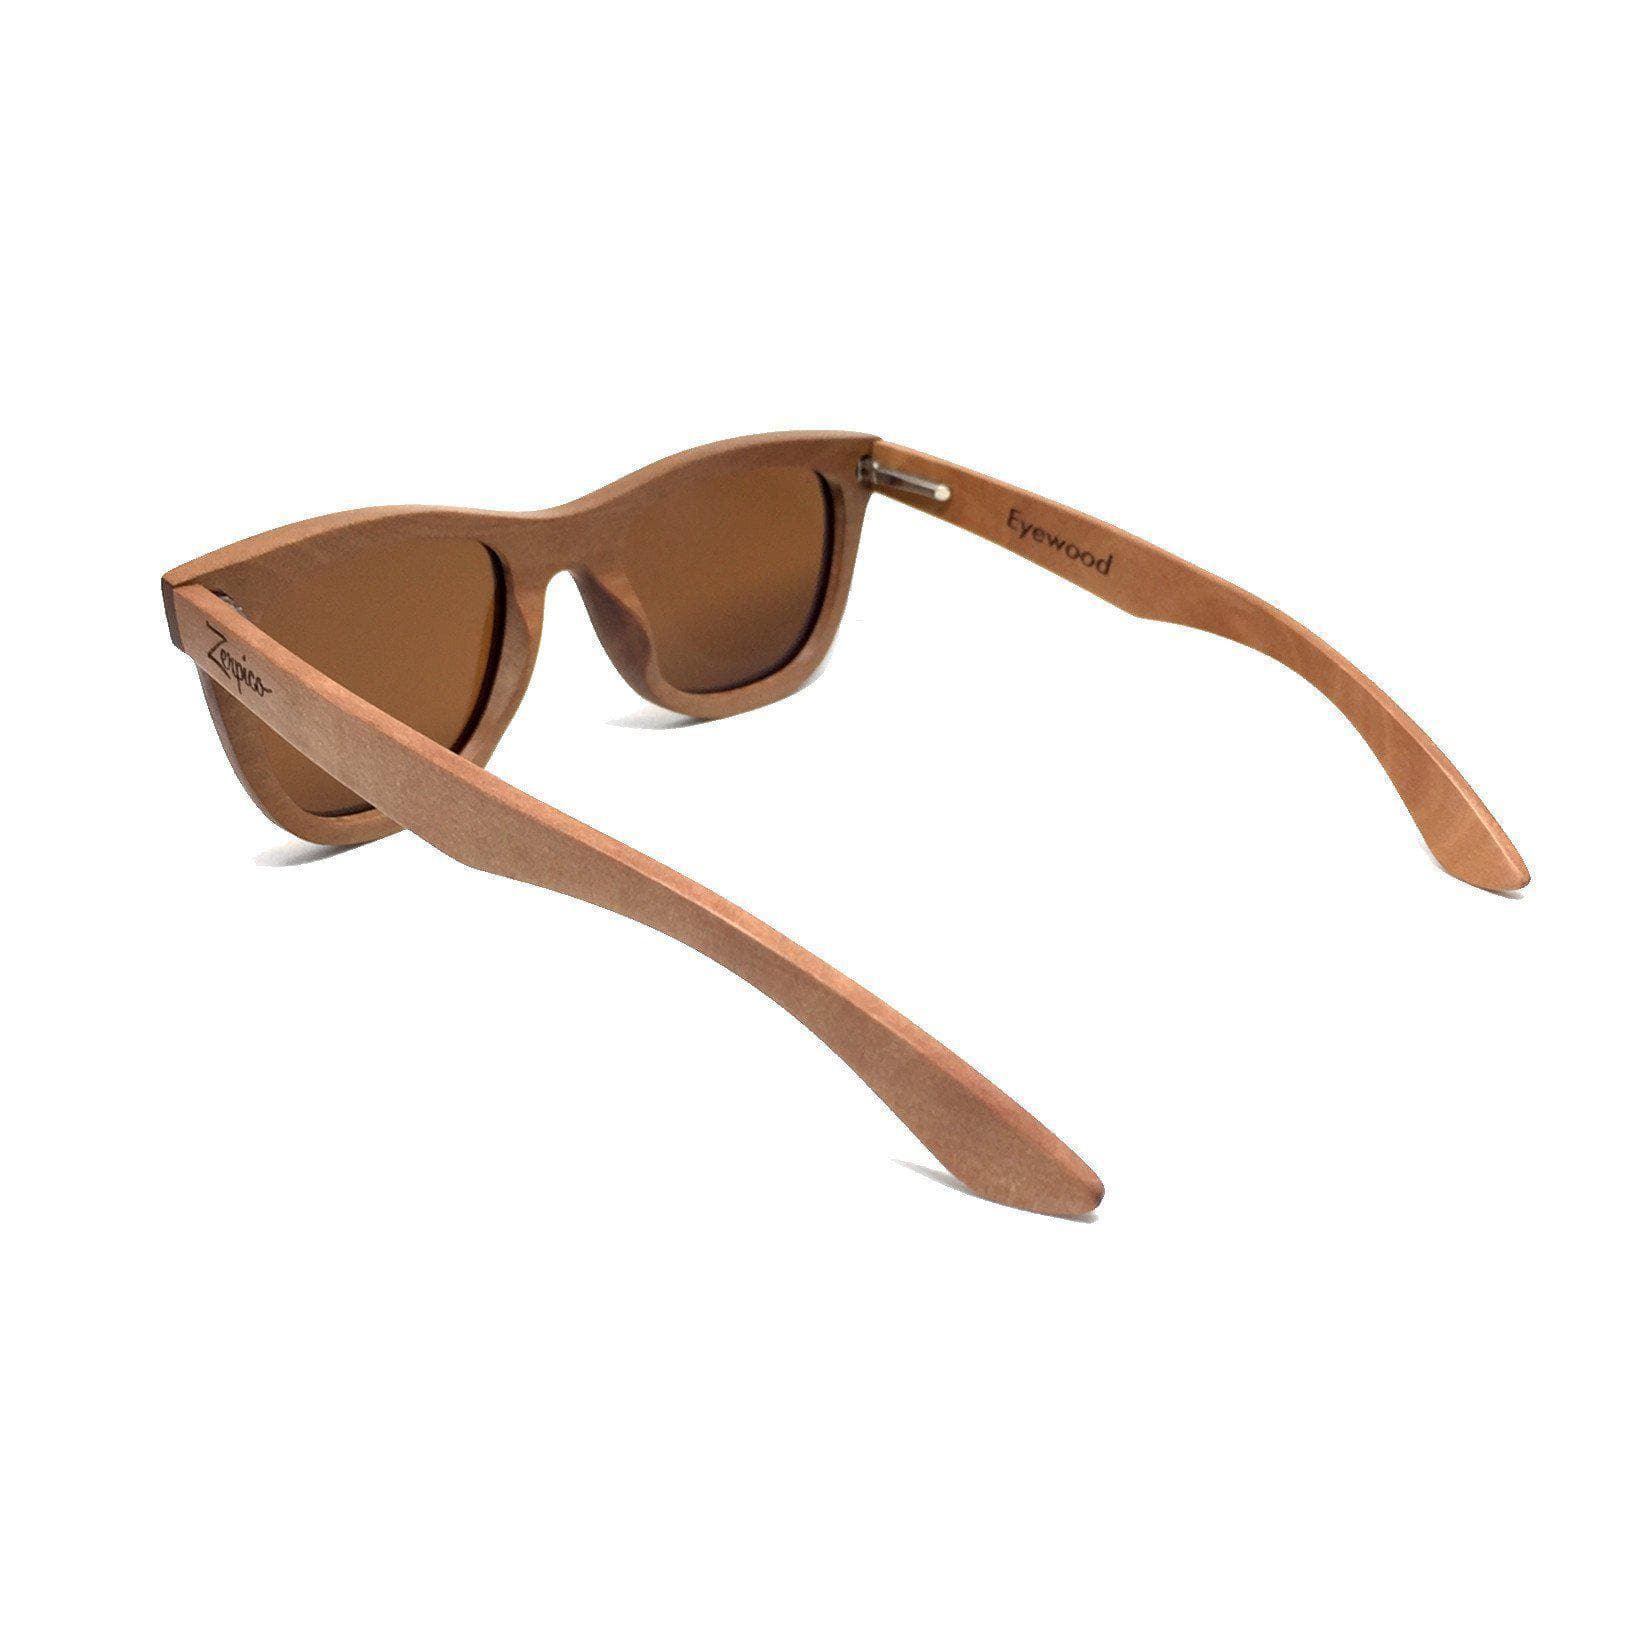 Eyewood Wayfarer - Waki - All wooden sunglasses side